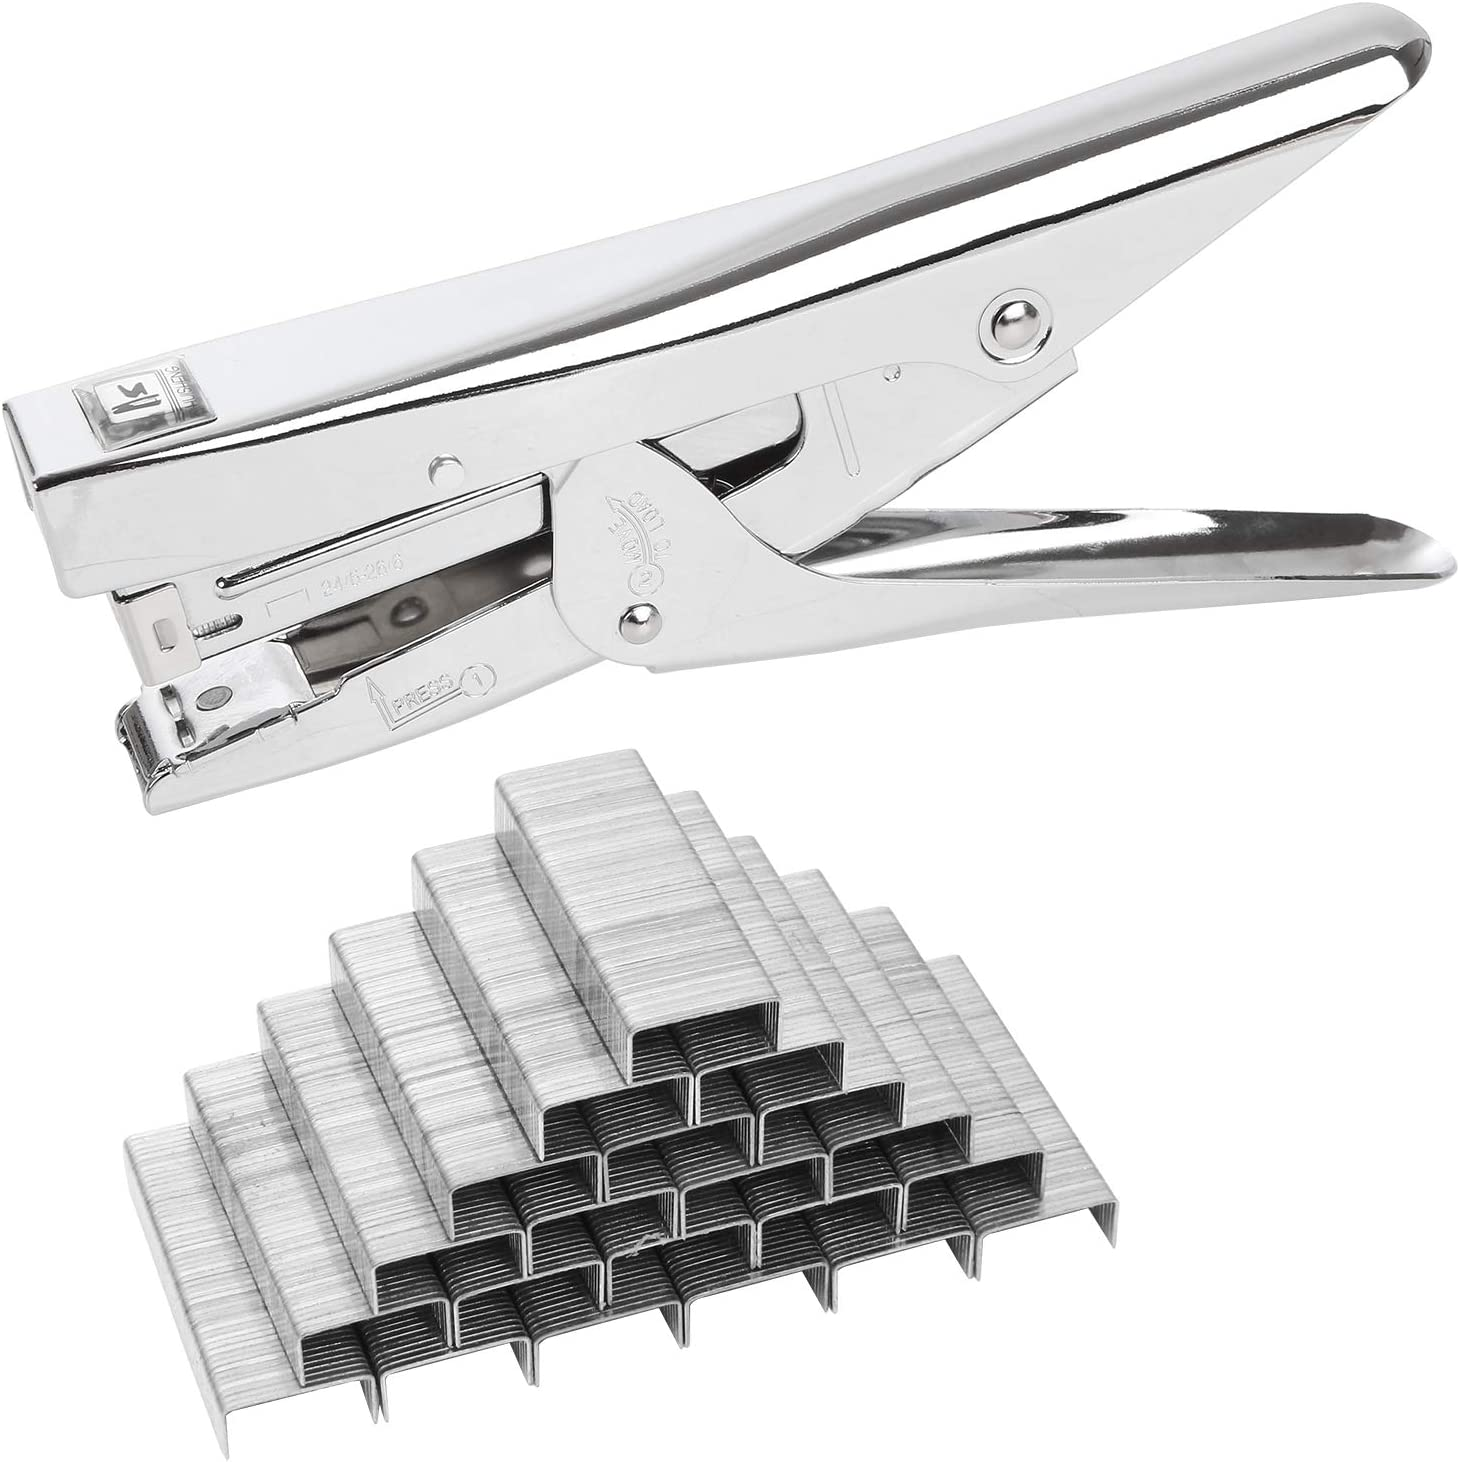 2 PCS Office Ranking integrated 1st place Stapler with 4000 Heavy 25 Staples Capacity OFFicial site Sheets